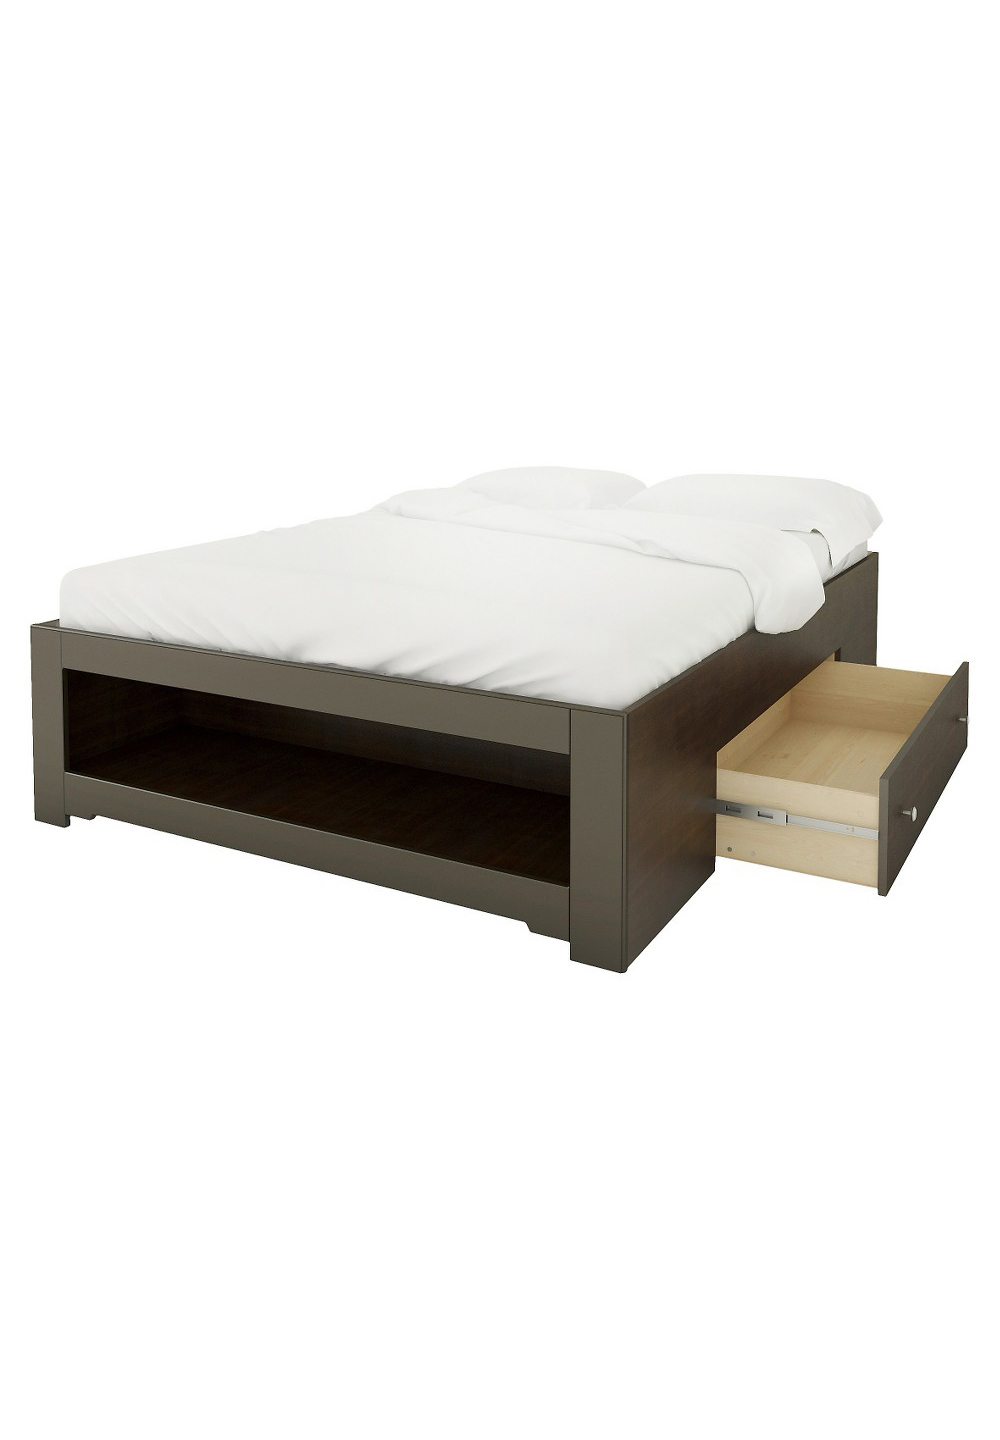 Nexera Dixon Full Size Reversible Storage Bed in Espresso